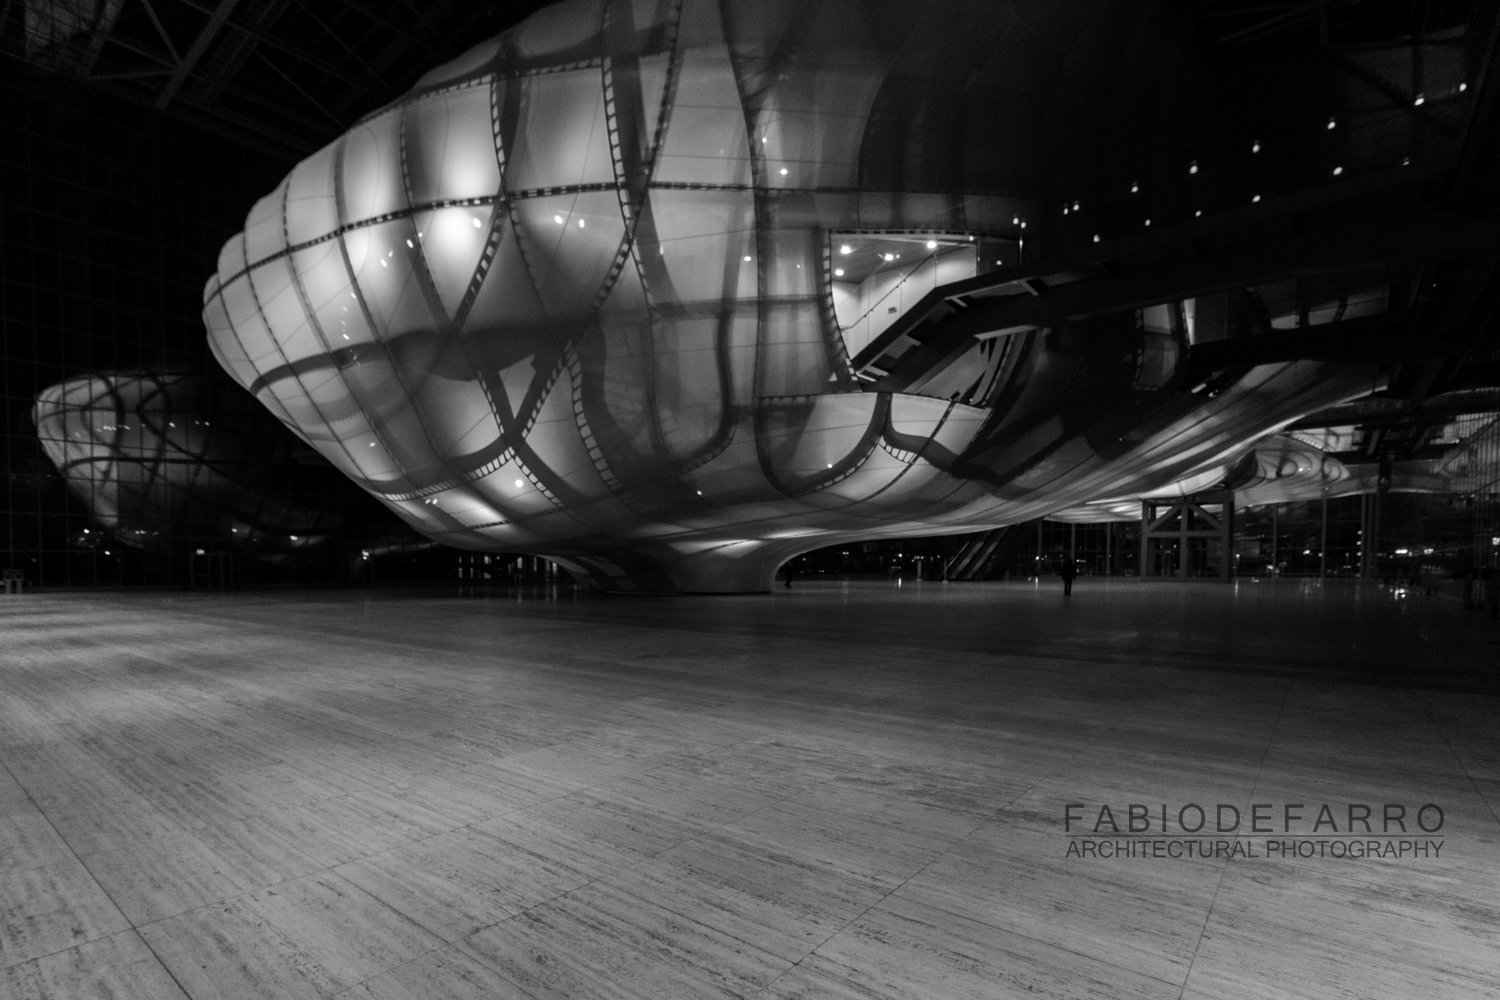 Convention Center - Rome The Cloud - Fuxas Studio - Ground level, distribution and exhibition space